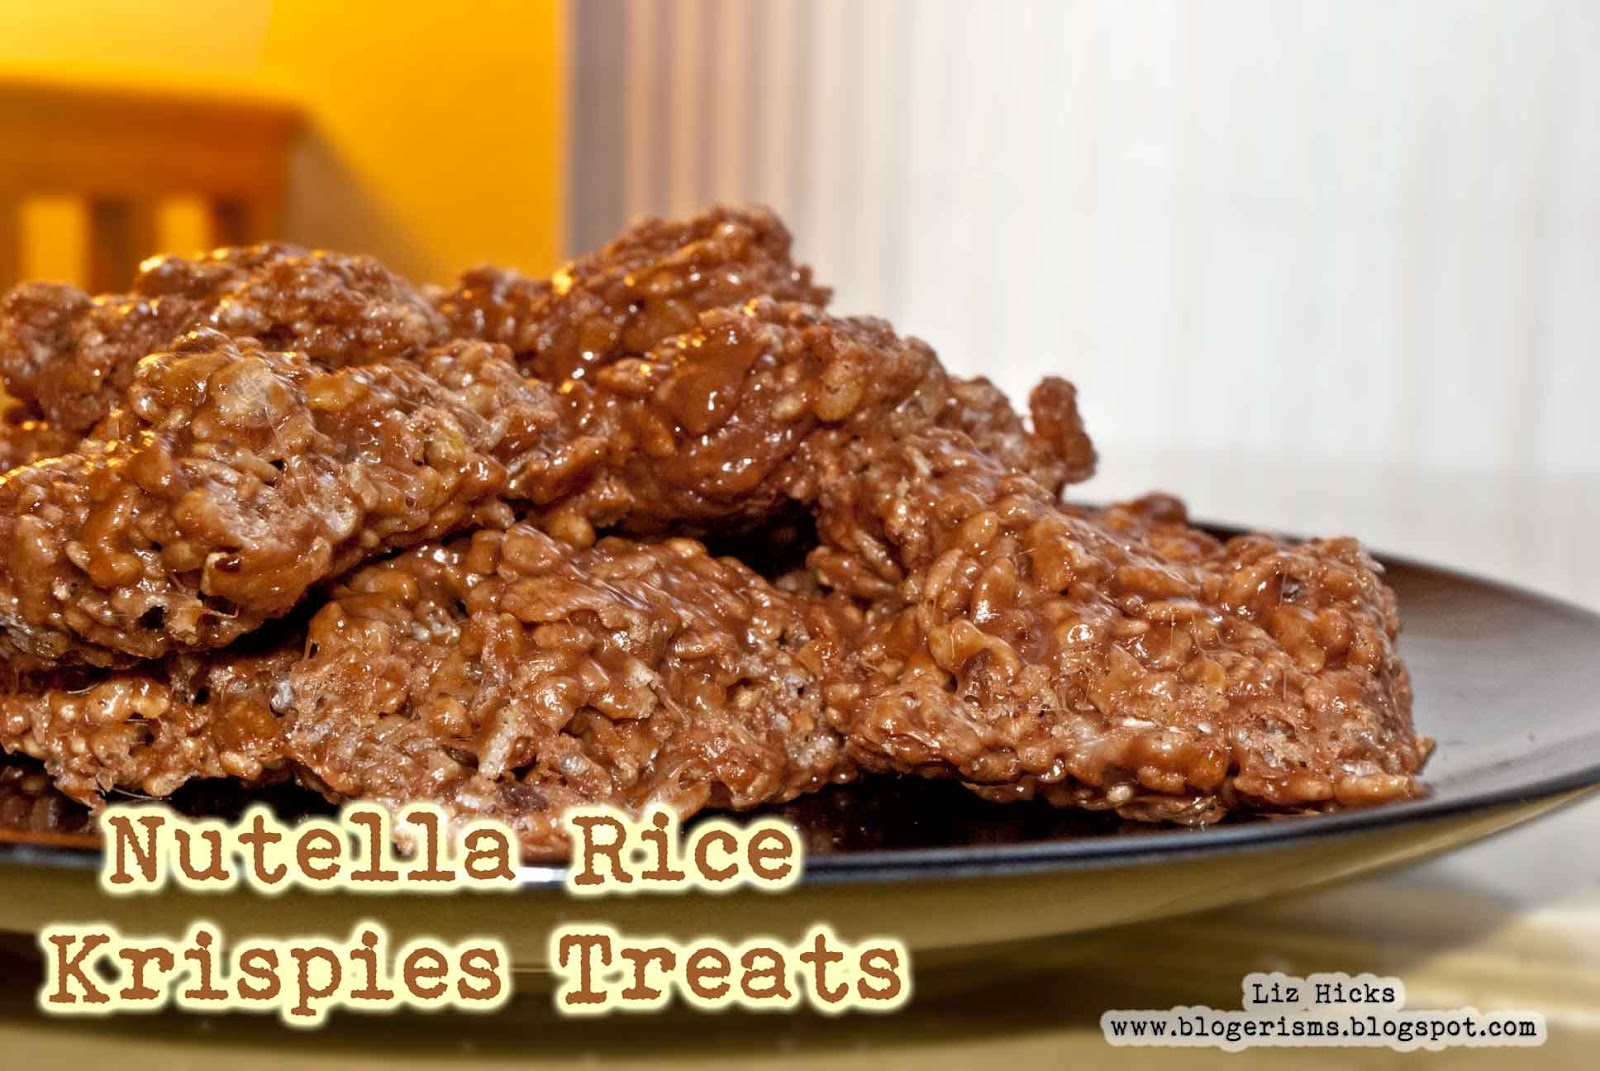 Liz Hicks Studios: Nutella Rice Krispies Treats